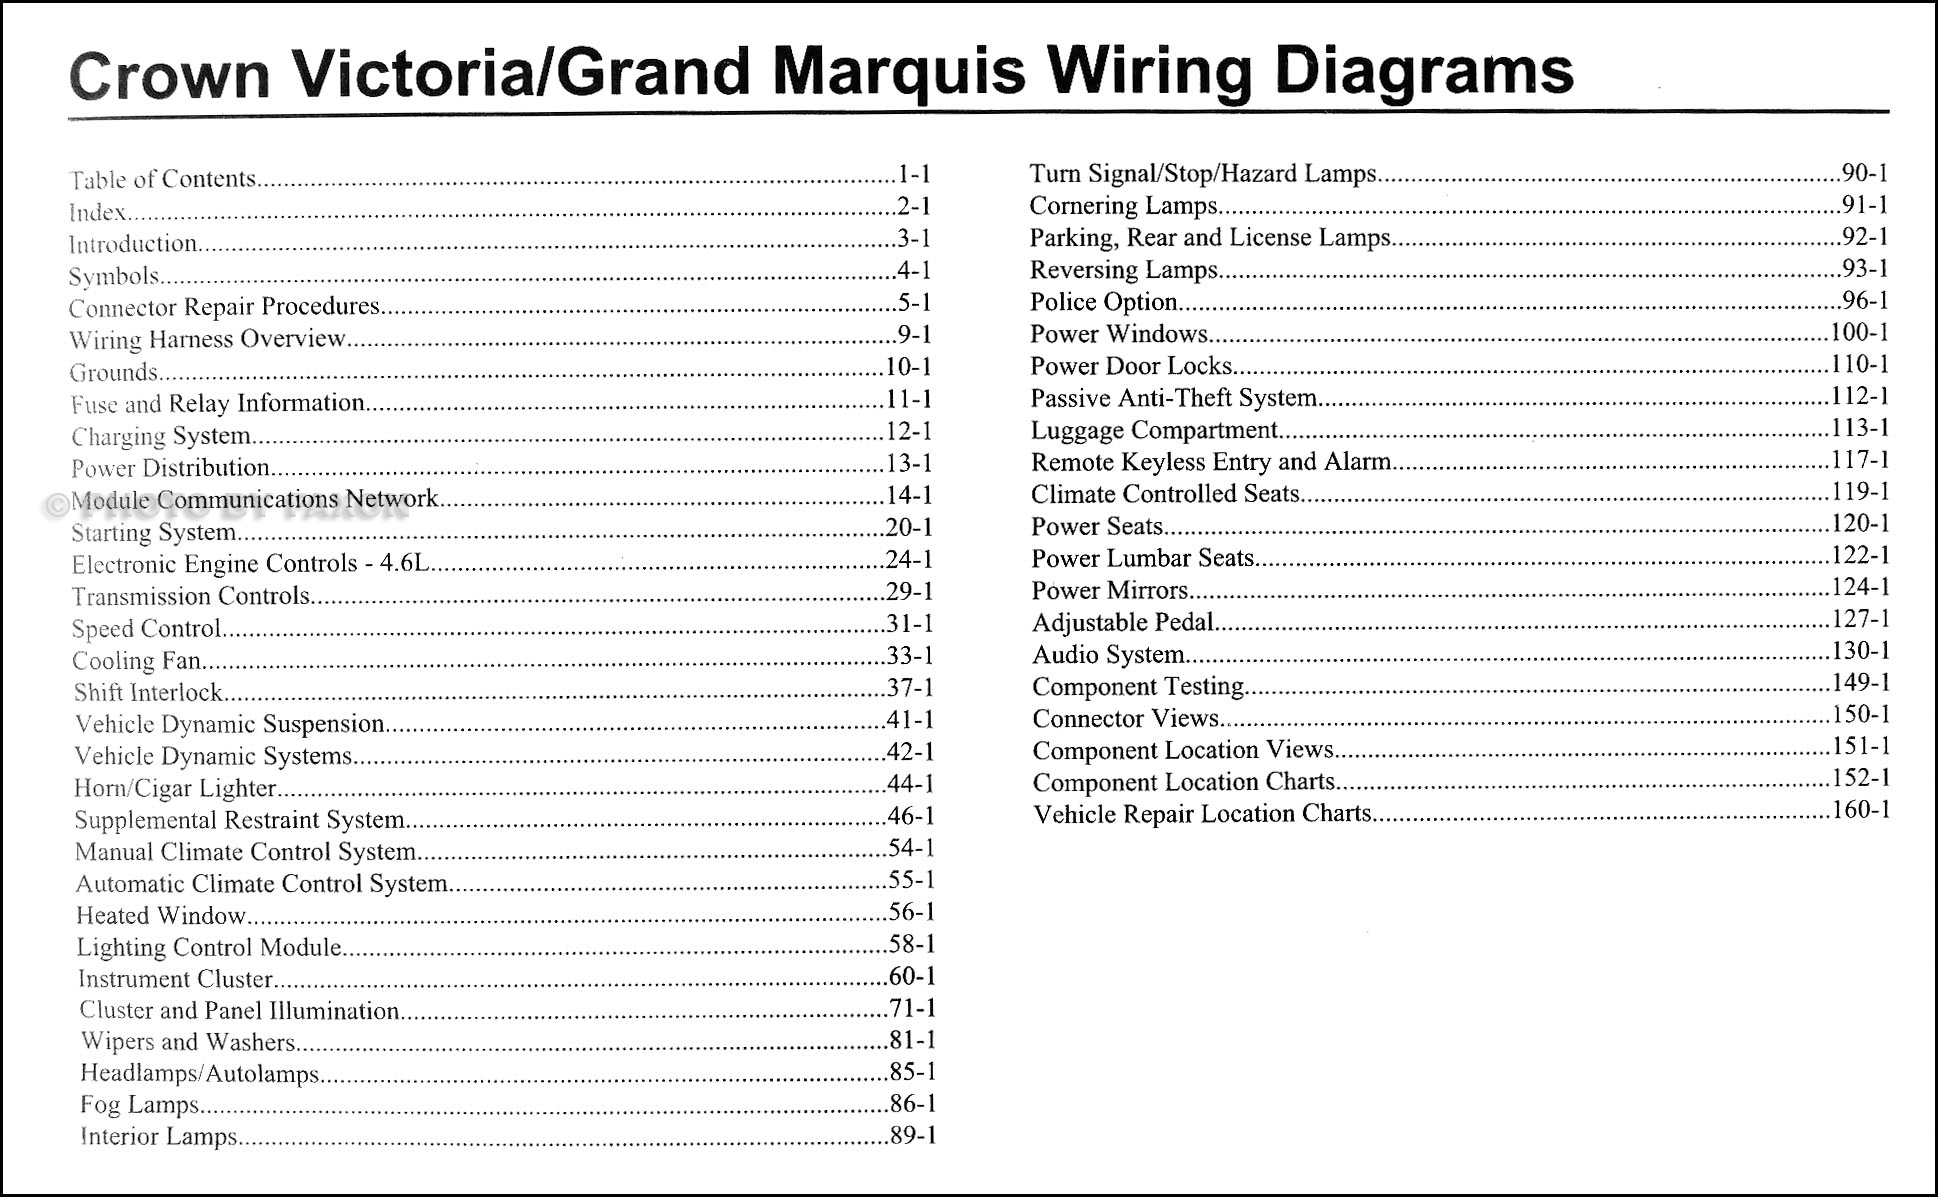 2009FordCrownVictoriaOWD TOC 2009 crown victoria & grand marquis original wiring diagram manual 2004 mercury grand marquis fuse box diagram at n-0.co